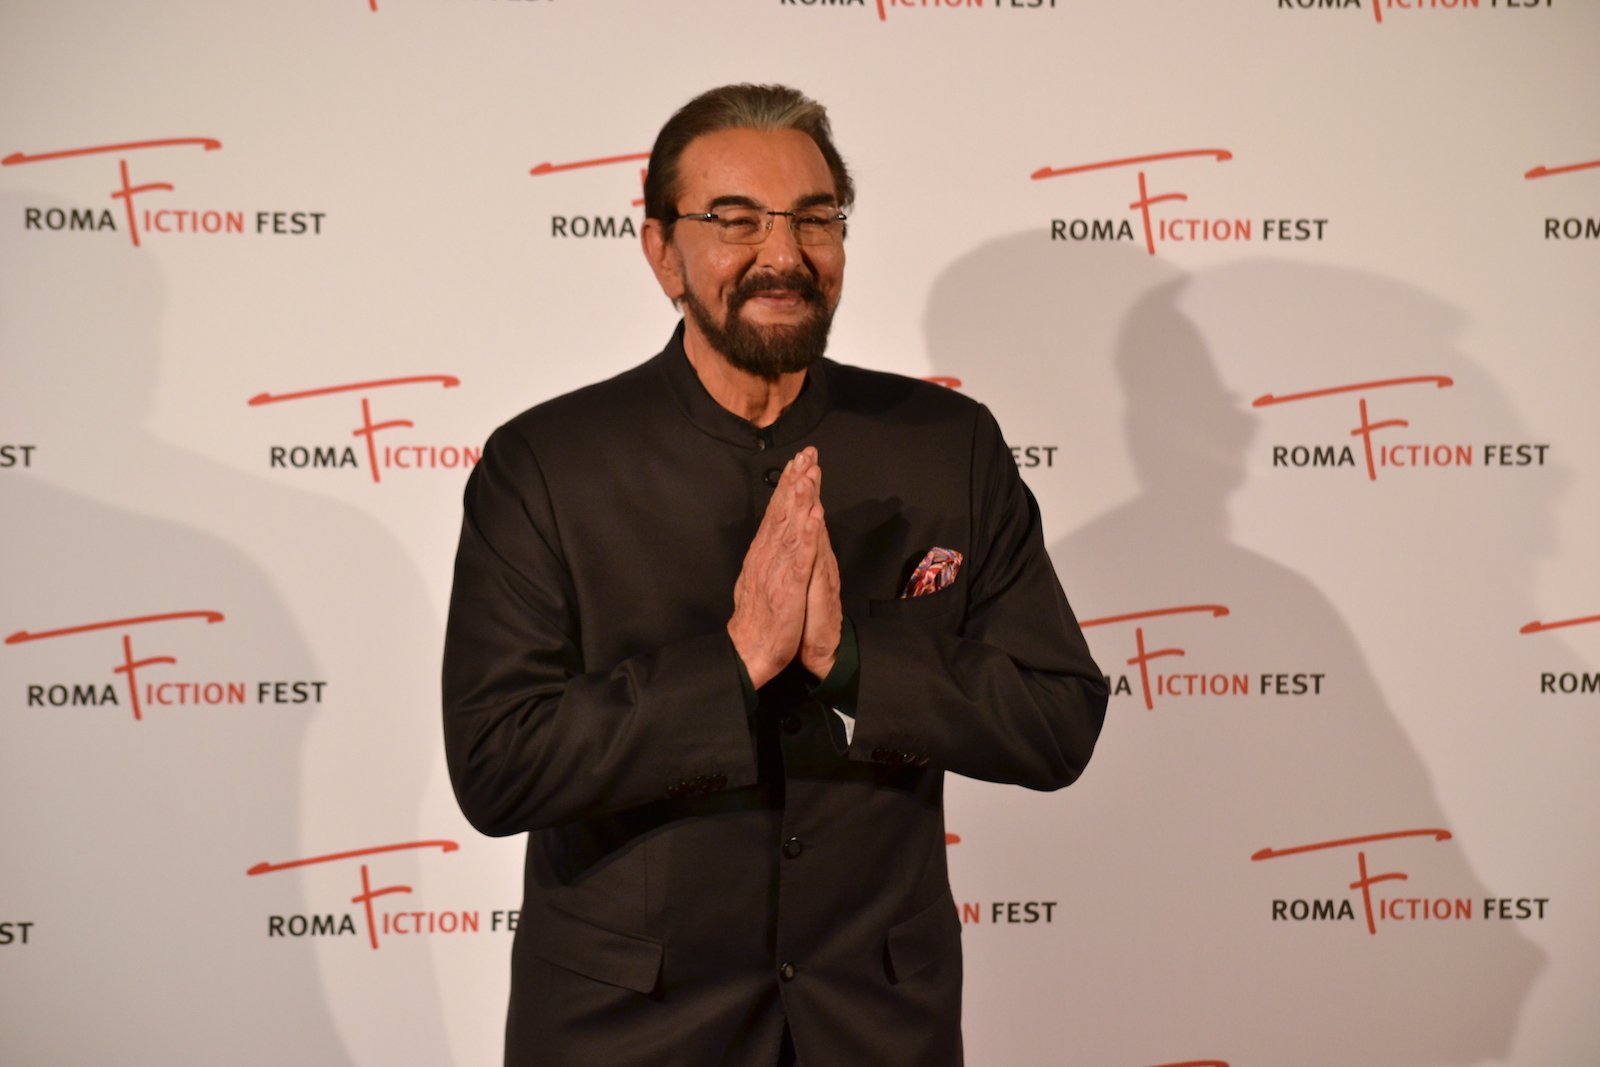 Roma Fiction Fest 2015: Kabir Bedi saluta i fotografi sul red carpet di Sandokan